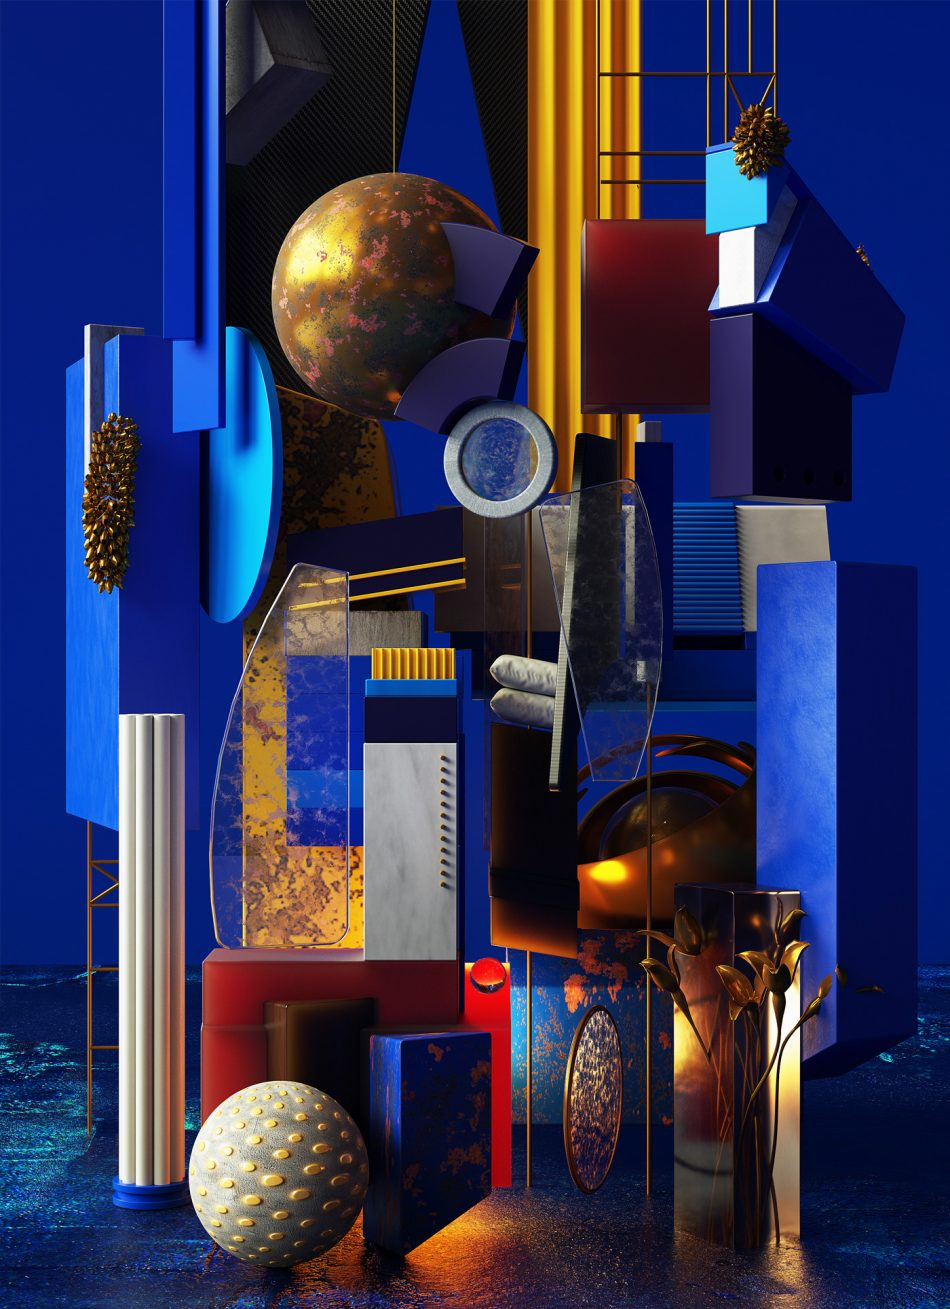 Cubist Compositions by Omar Aqil cubist composition Cubist Compositions by Omar Aqil Cubist Compositions 11